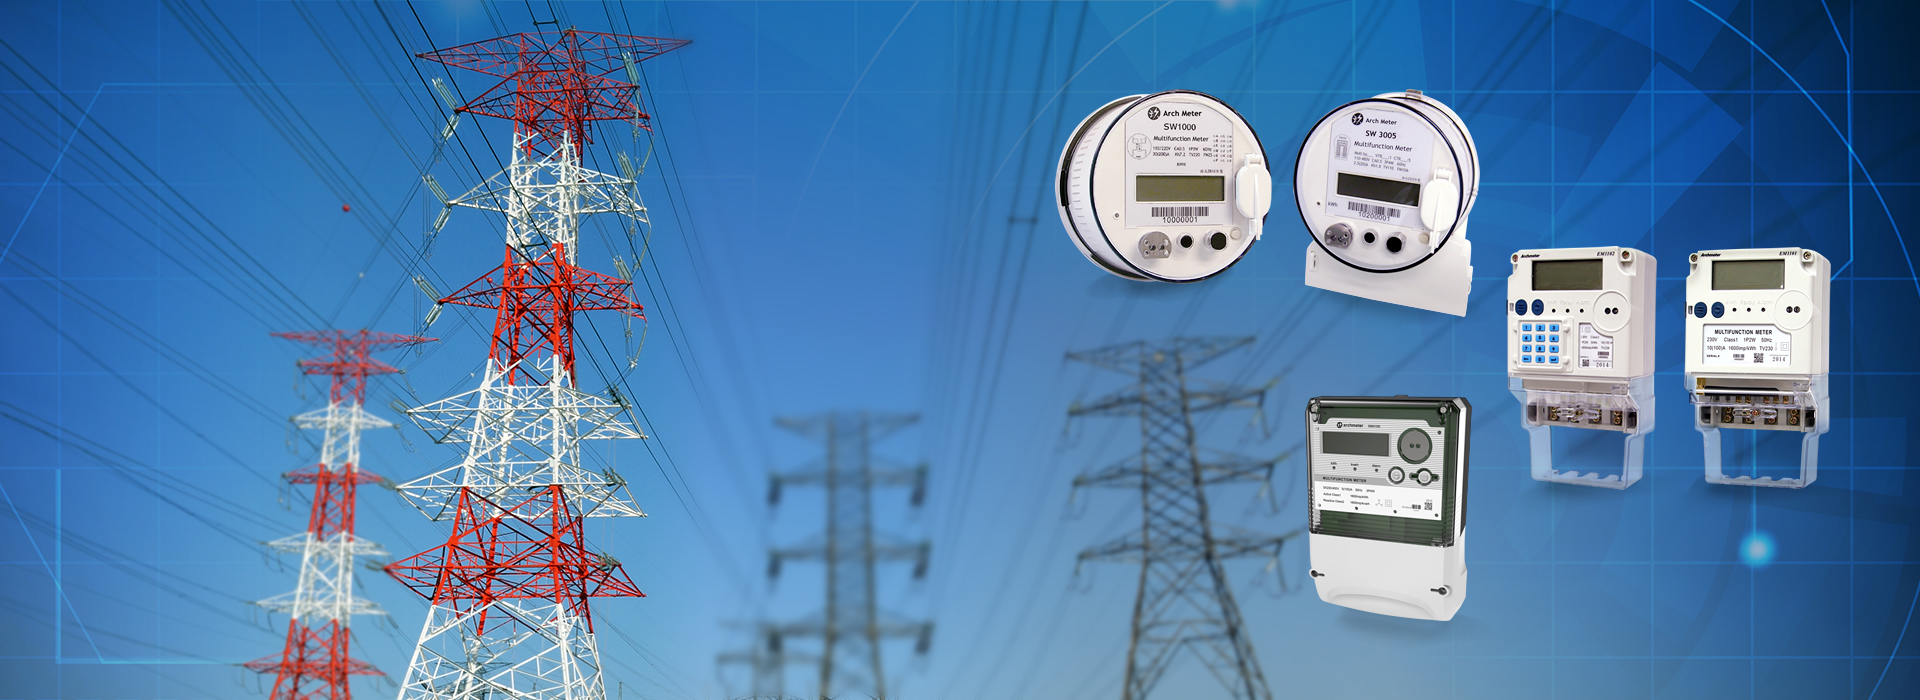 Smart Energy Meter Enhances Metering System and Management in AMI